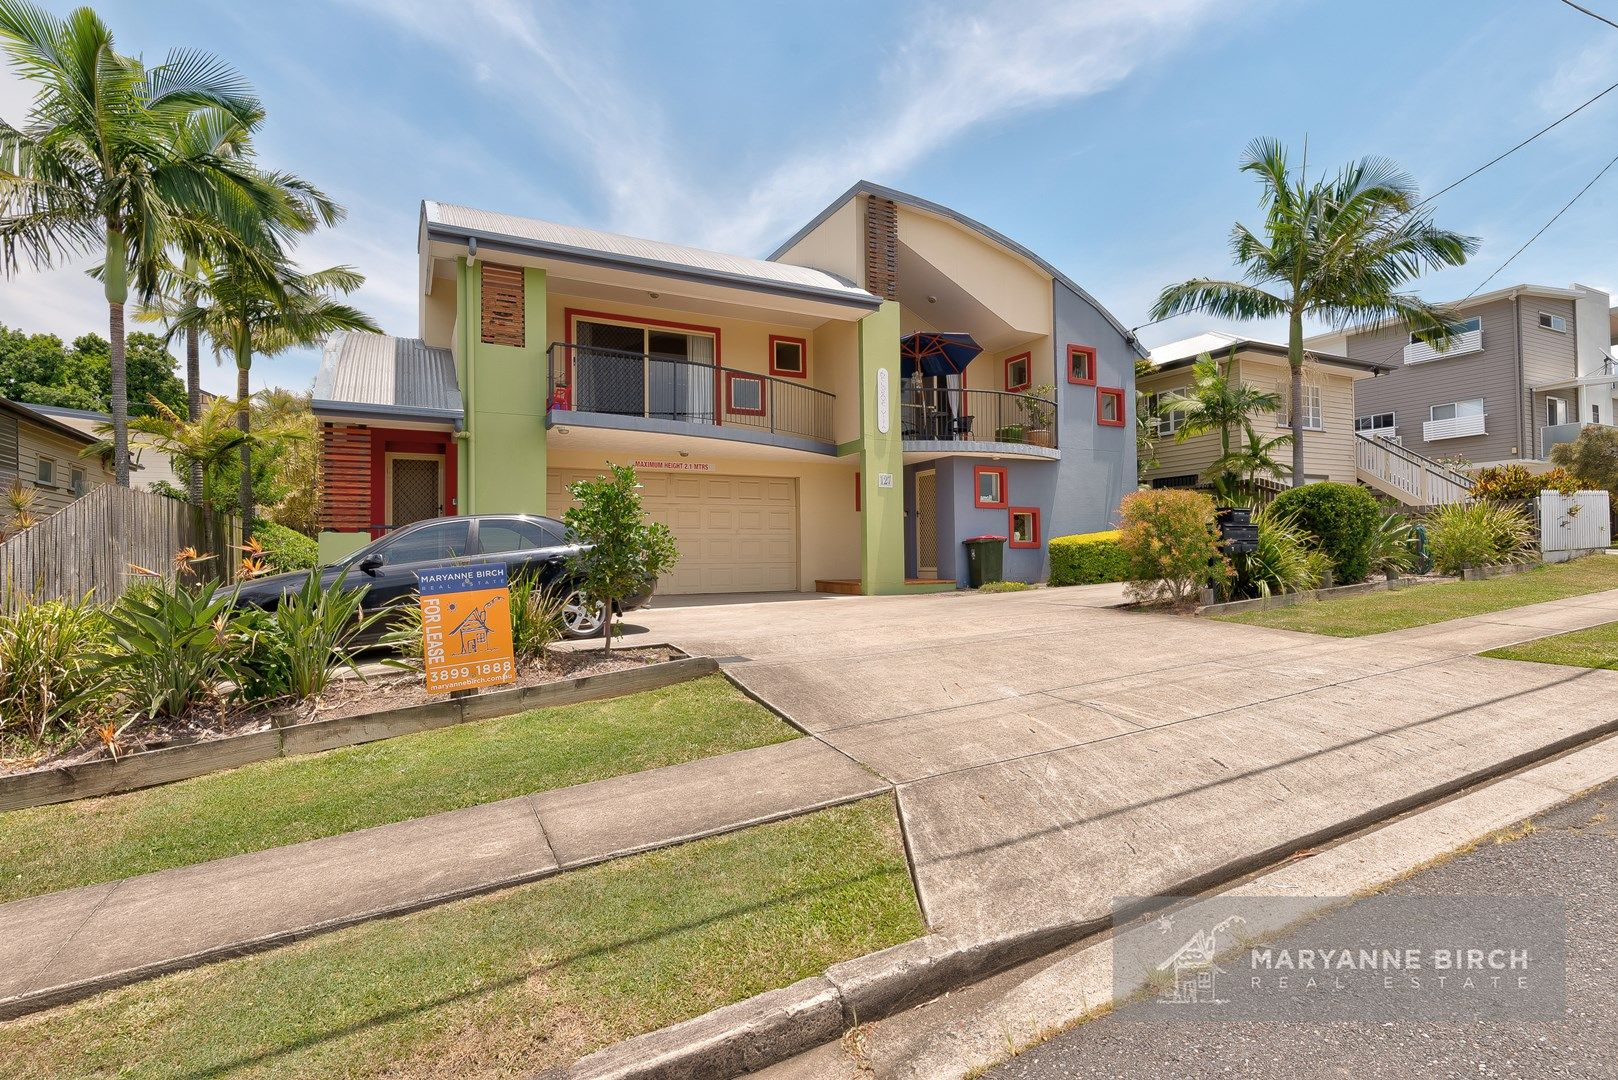 2/127 Belgrave Street, Morningside QLD 4170, Image 0